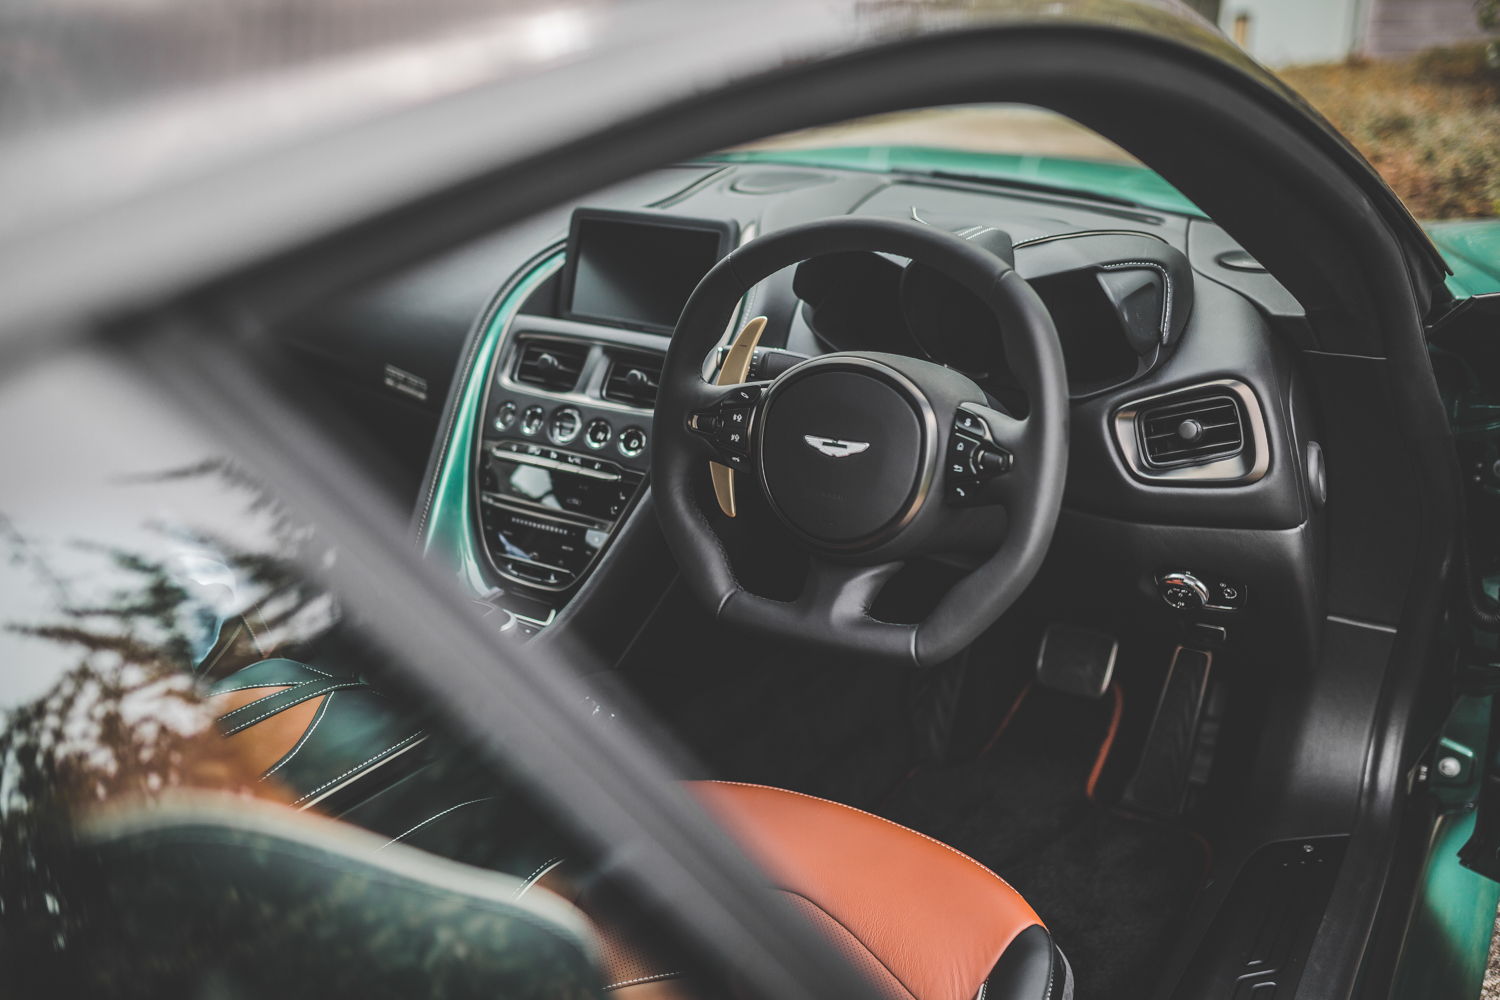 Aston Martin DBS 59 steering wheel